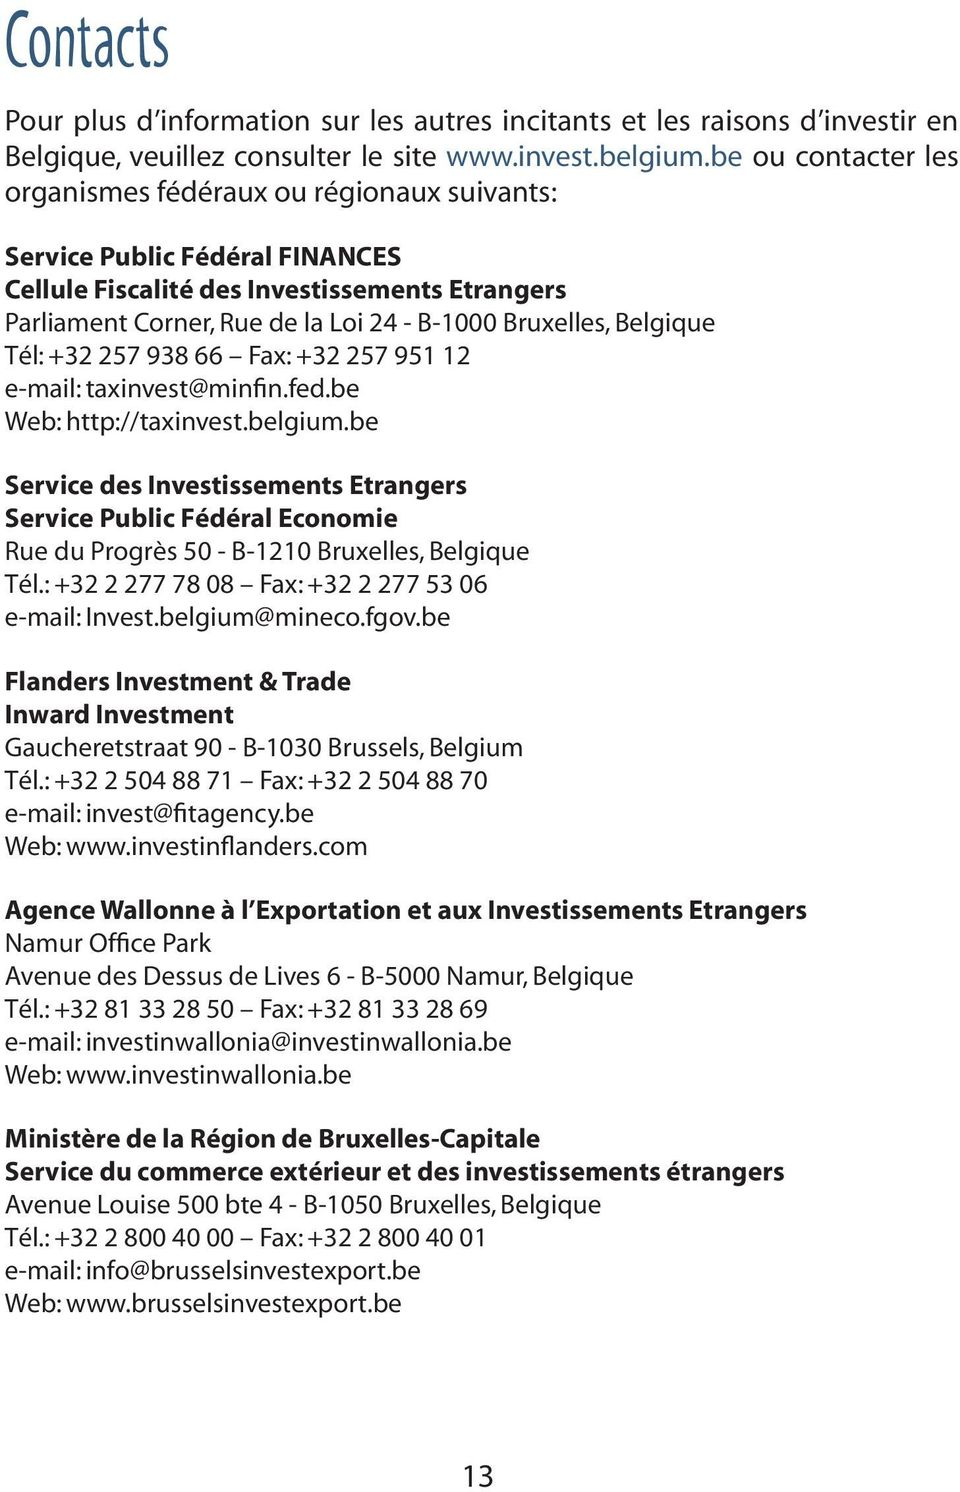 Belgique Tél: +32 257 938 66 Fax: +32 257 951 12 e-mail: taxinvest@minfin.fed.be Web: http://taxinvest.belgium.